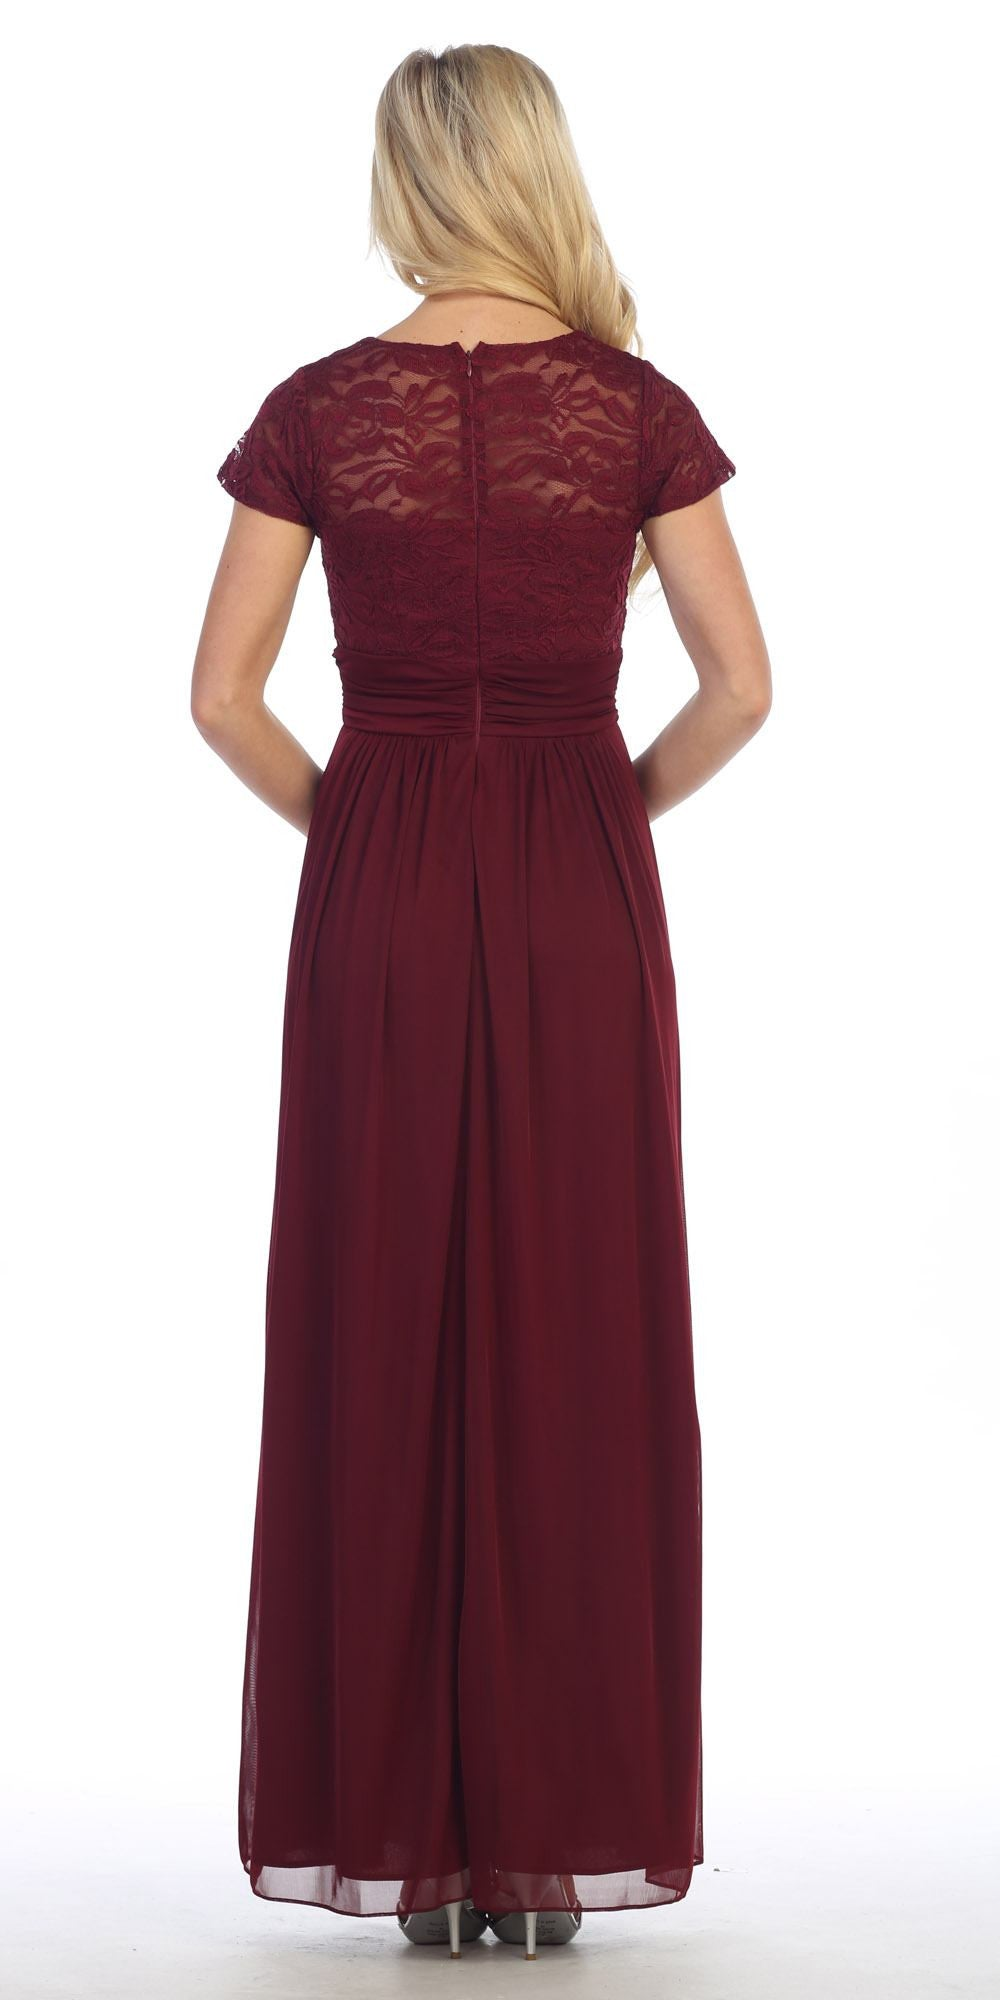 Lace Illusion Bodice Short Sleeves Long Formal Dress Burgundy Back